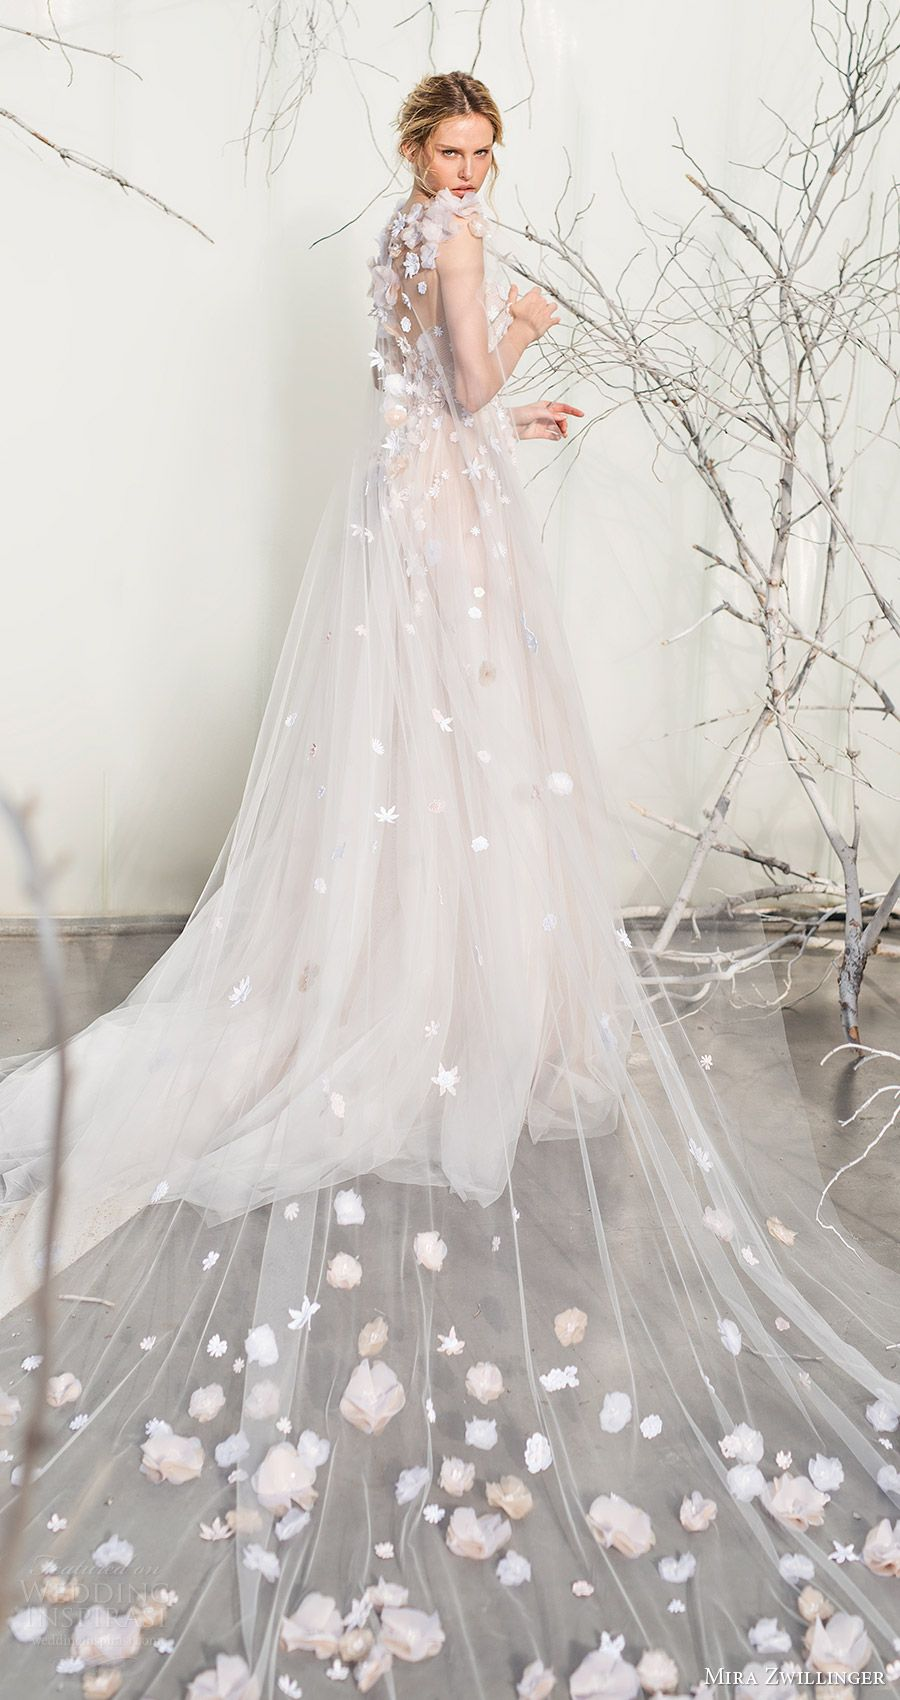 Mira zwillinger wedding dresses u ucwhisper of blossomud bridal